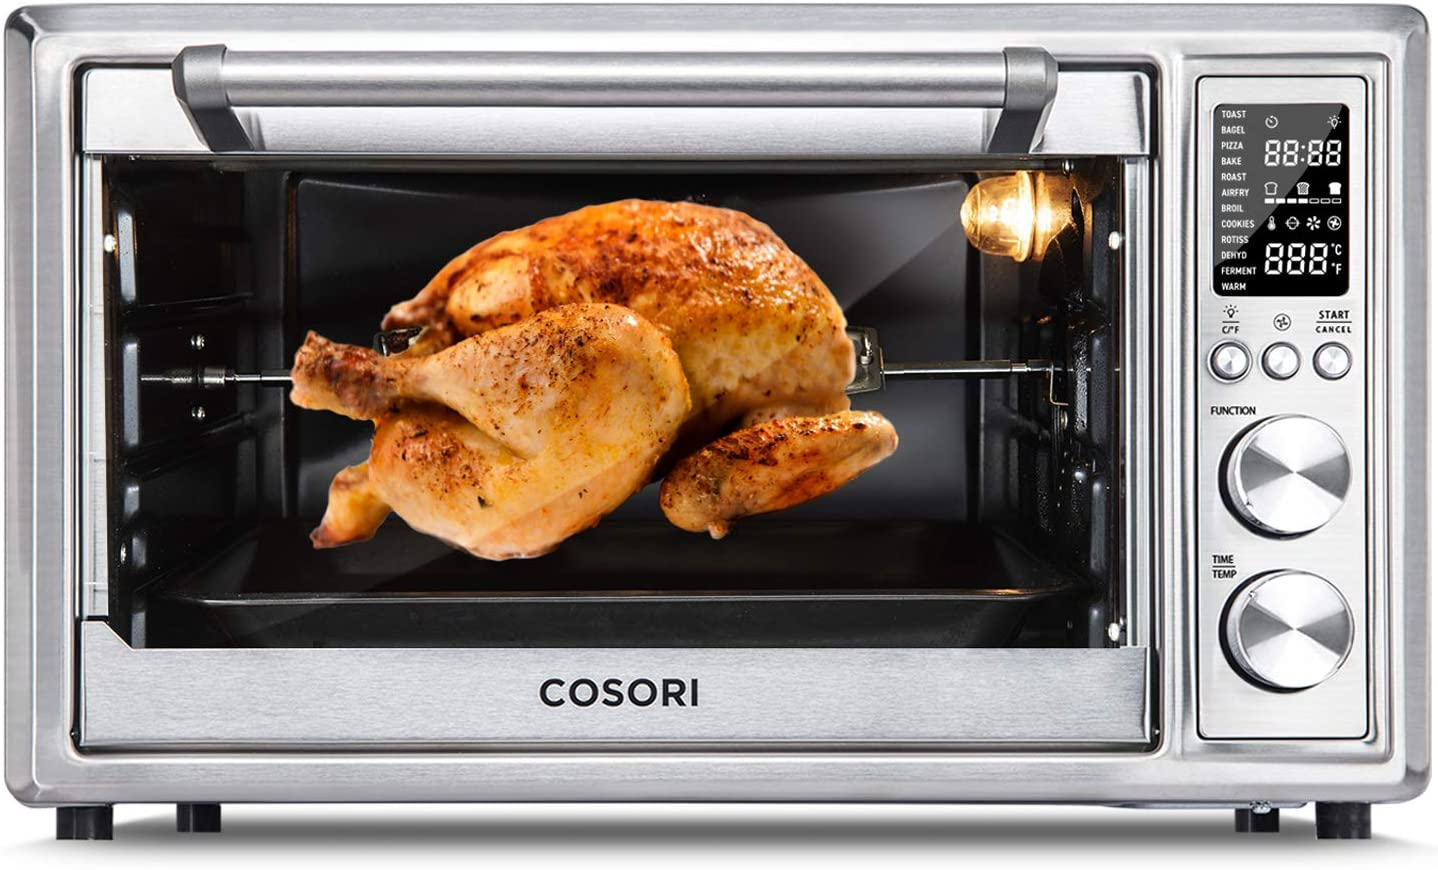 COSORI CO130-AO 12-in-1 Air Fryer Toaster Oven Combo Countertop Dehydrator for Chicken, Pizza and Cookies, Christmas Gift, 30L/31.7 QT, Silver